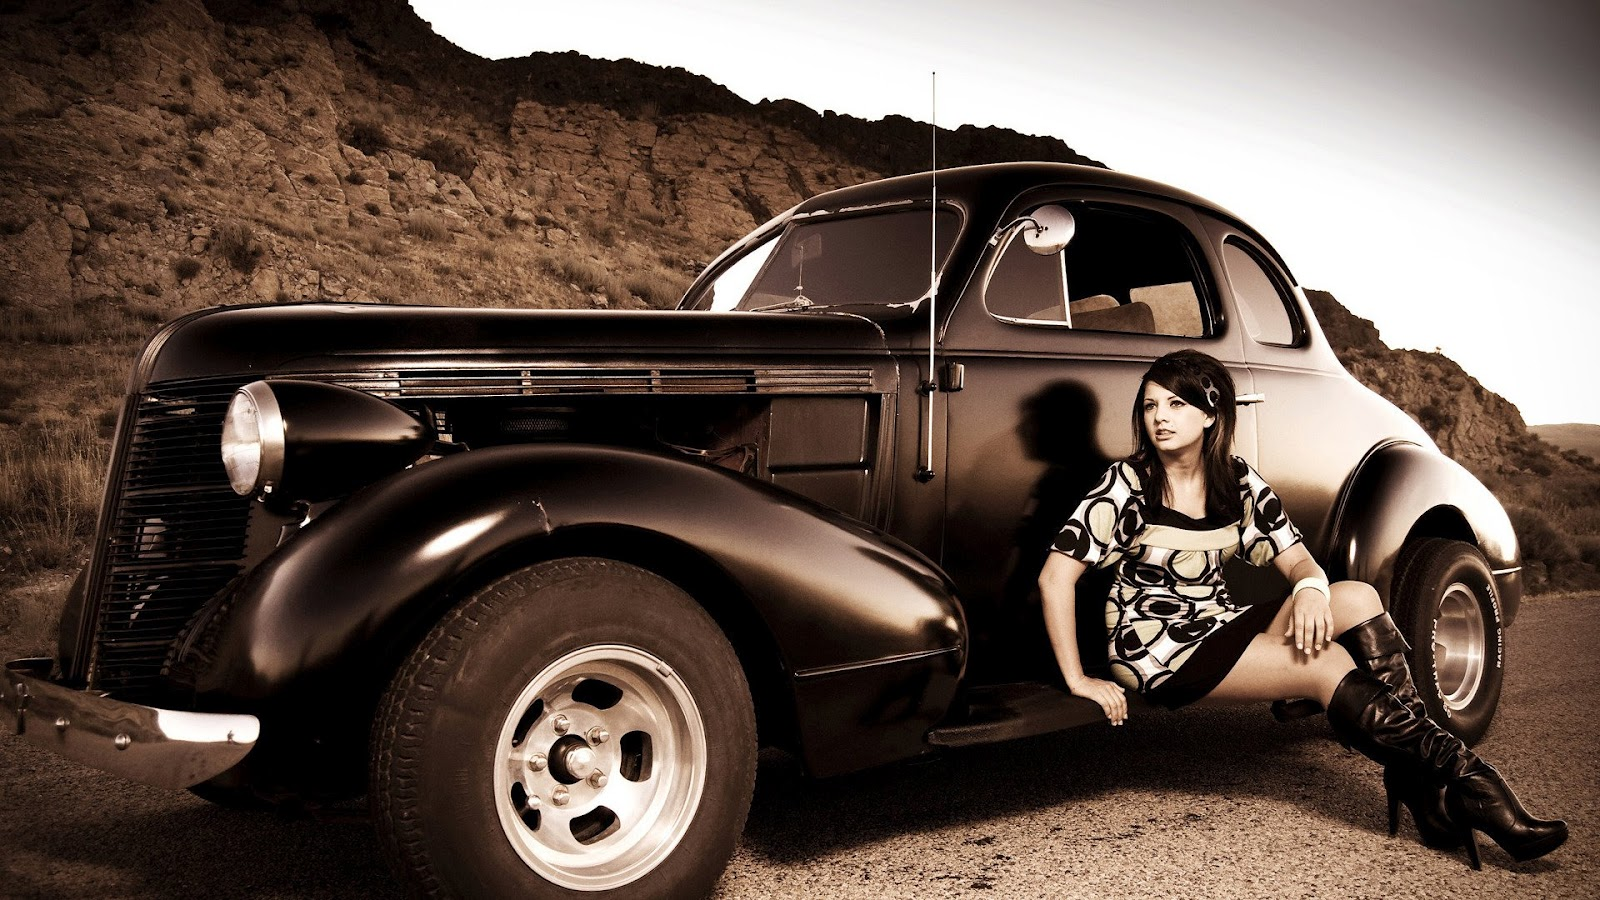 Antique Vintage Car And Girl Old Looking Photo Hd Desktop Wallpaper